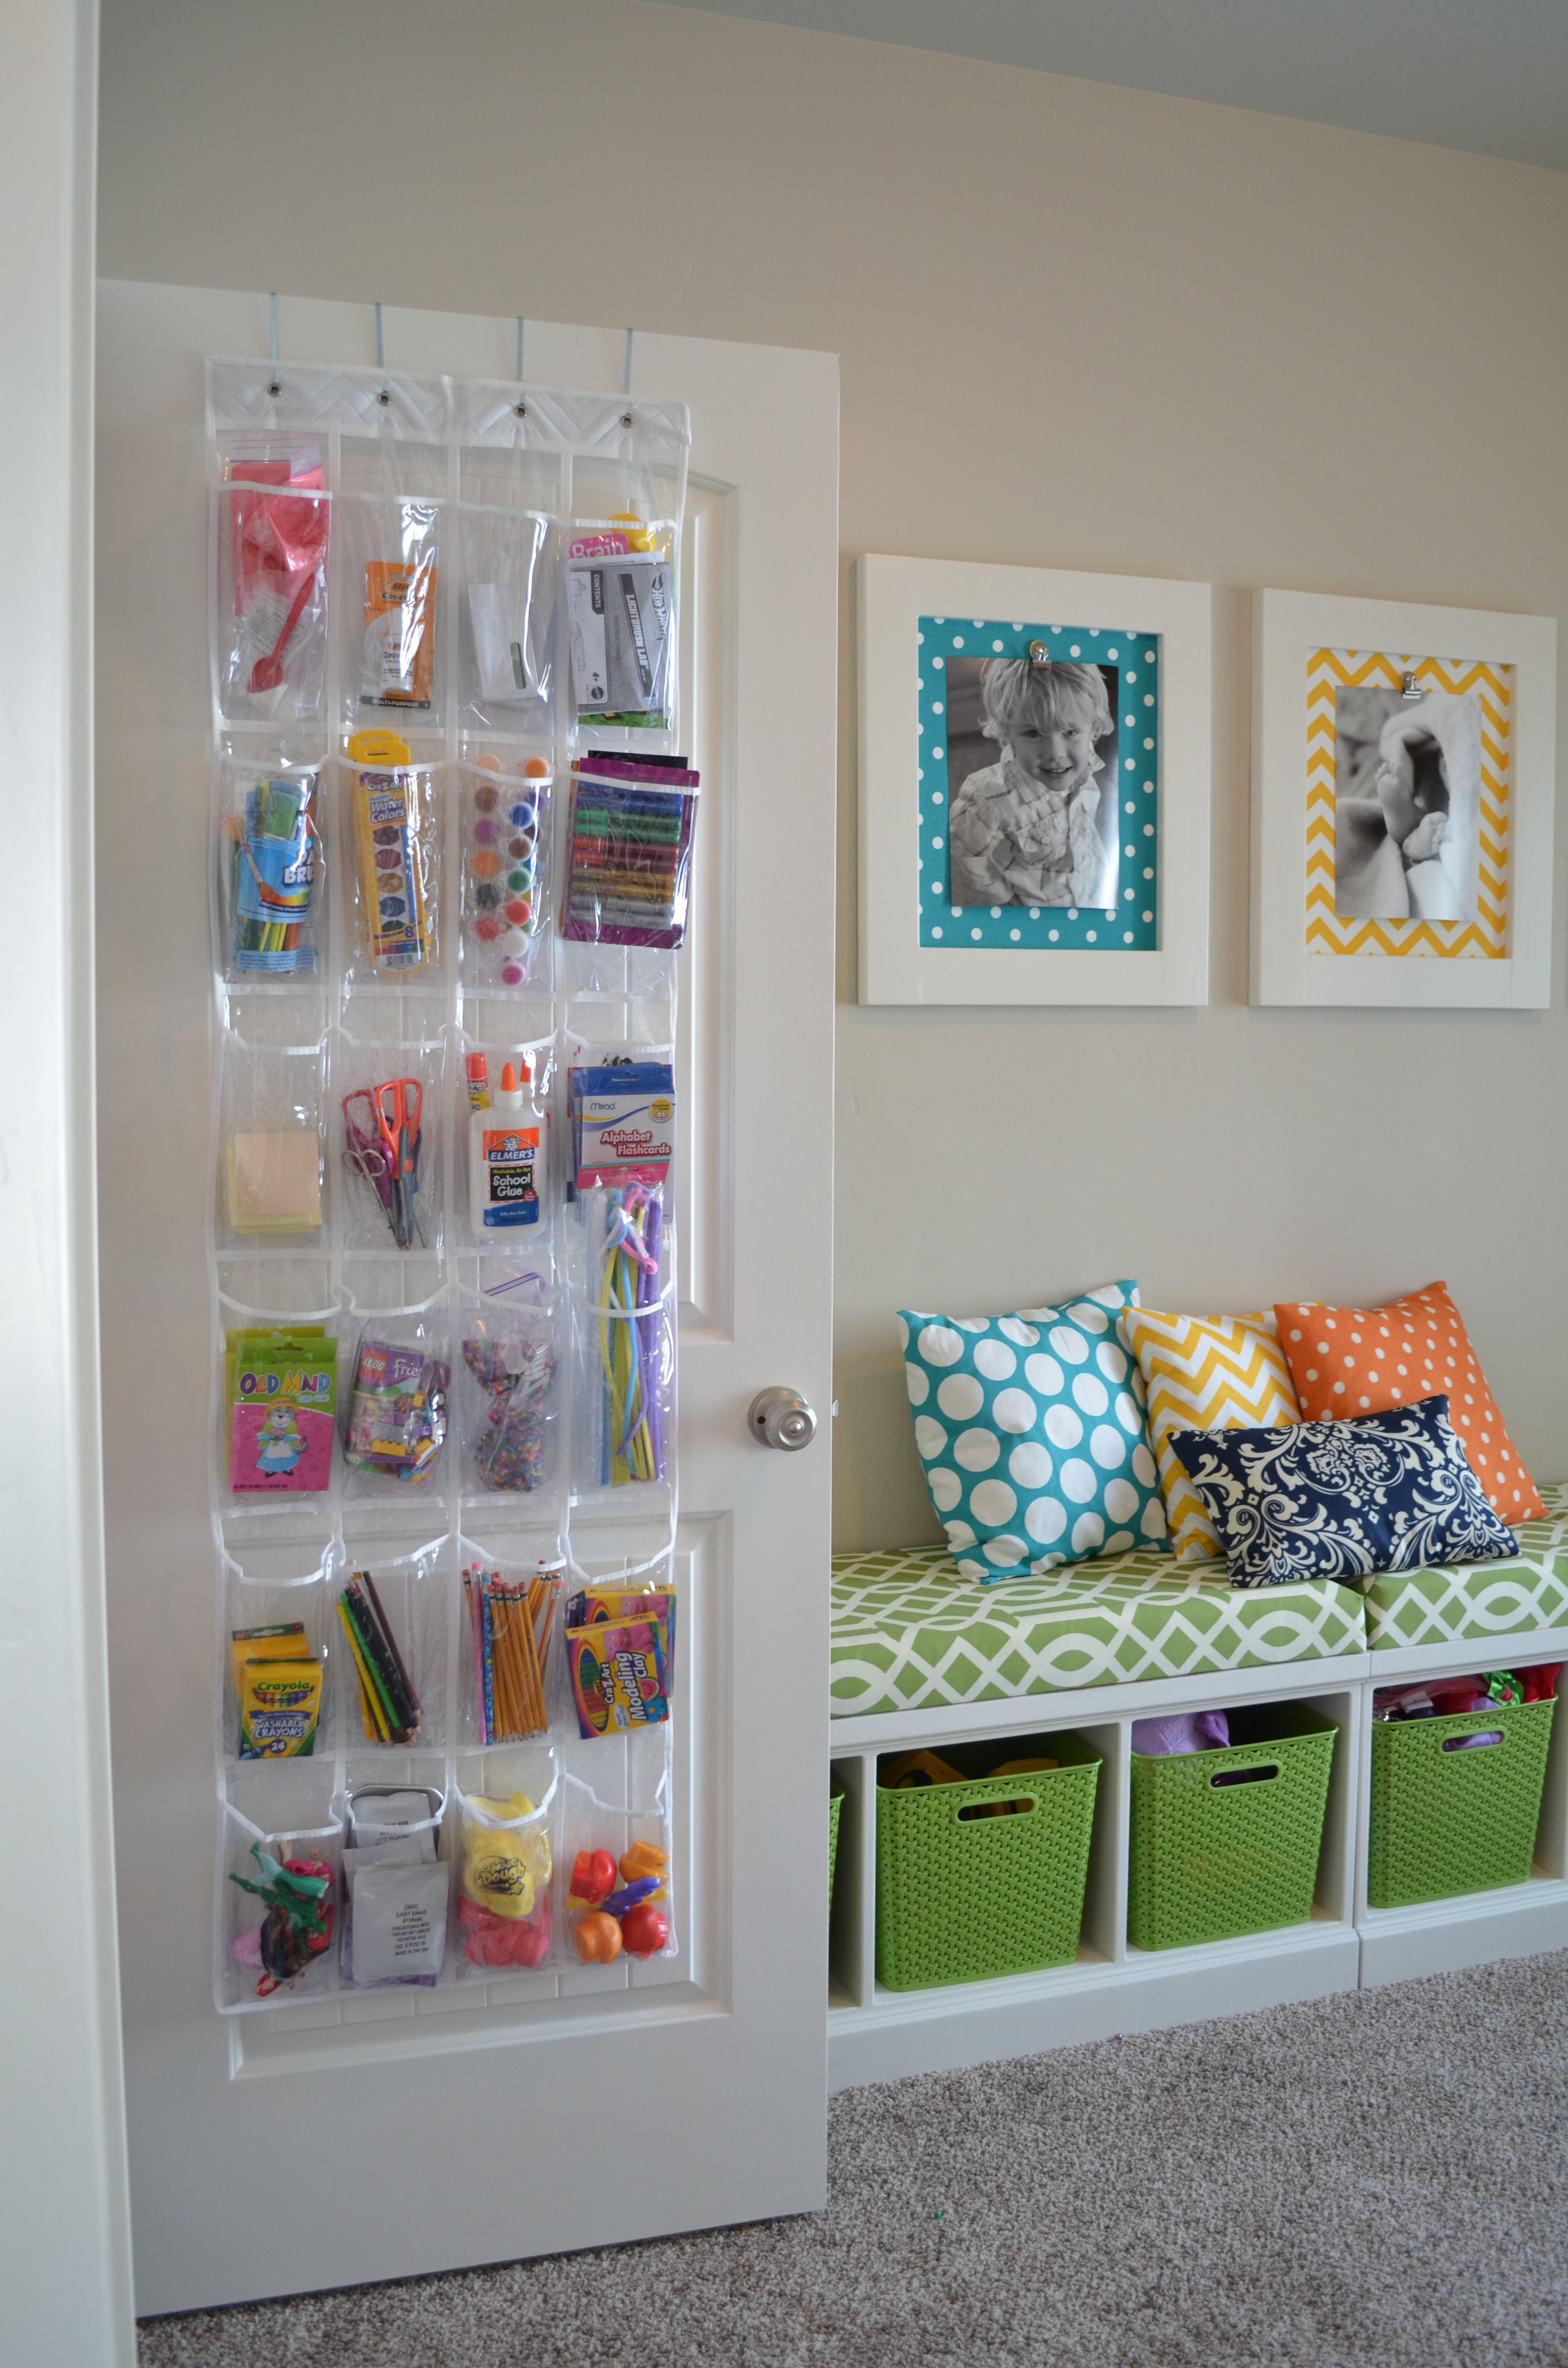 The 10 Best Playroom Organizing Tools – | Ideas For Our Home